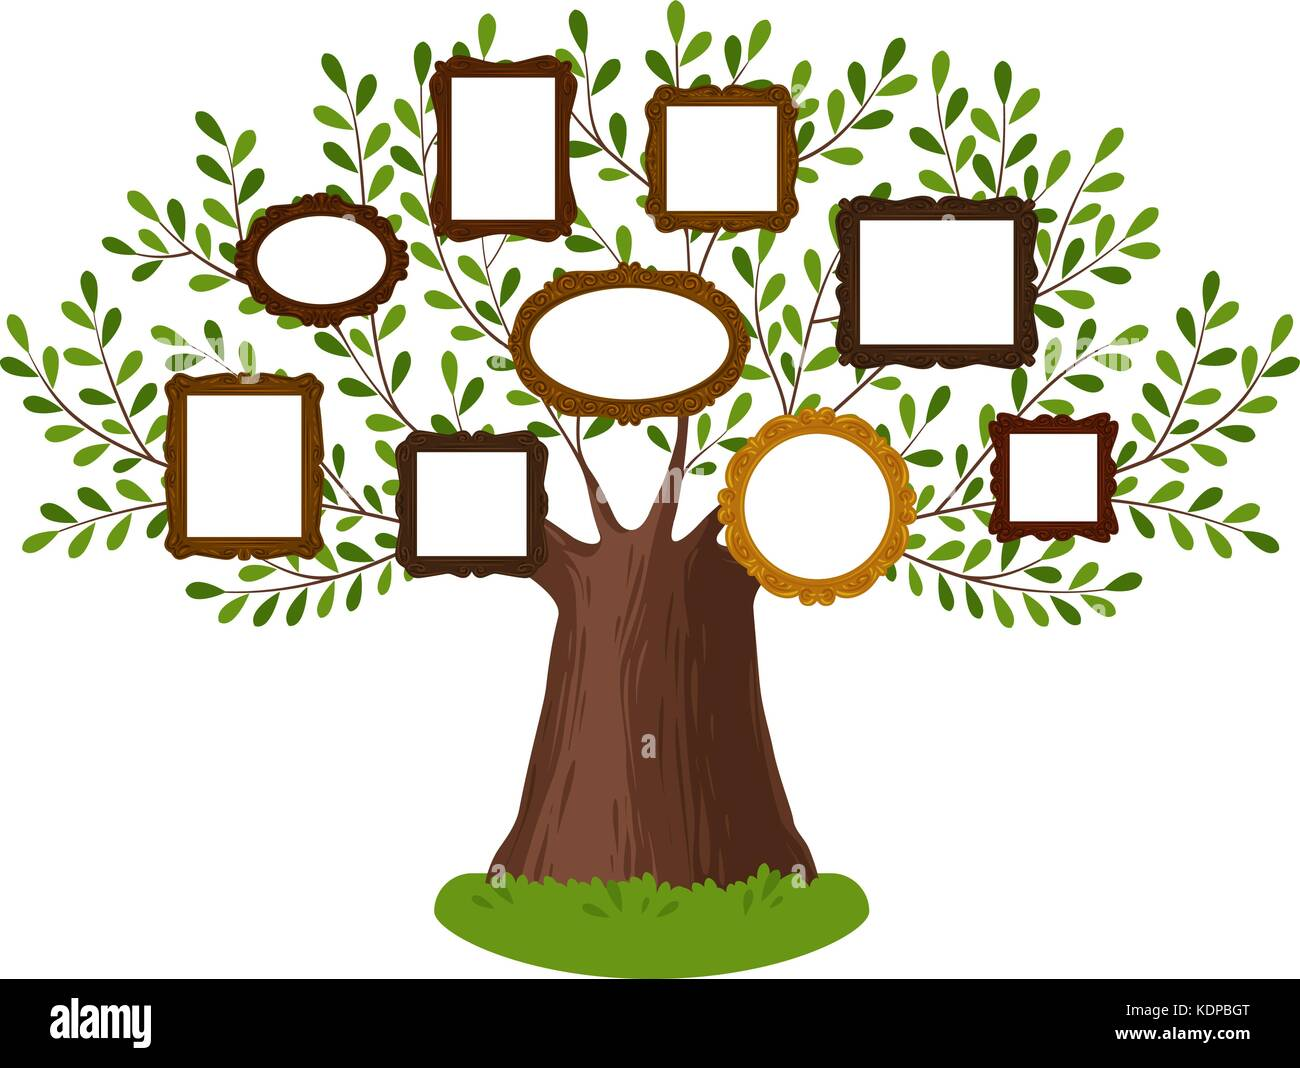 Genealogical family tree with picture frames. Pedigree, genealogy, lineage, dynasty concept. Vector illustration - Stock Image